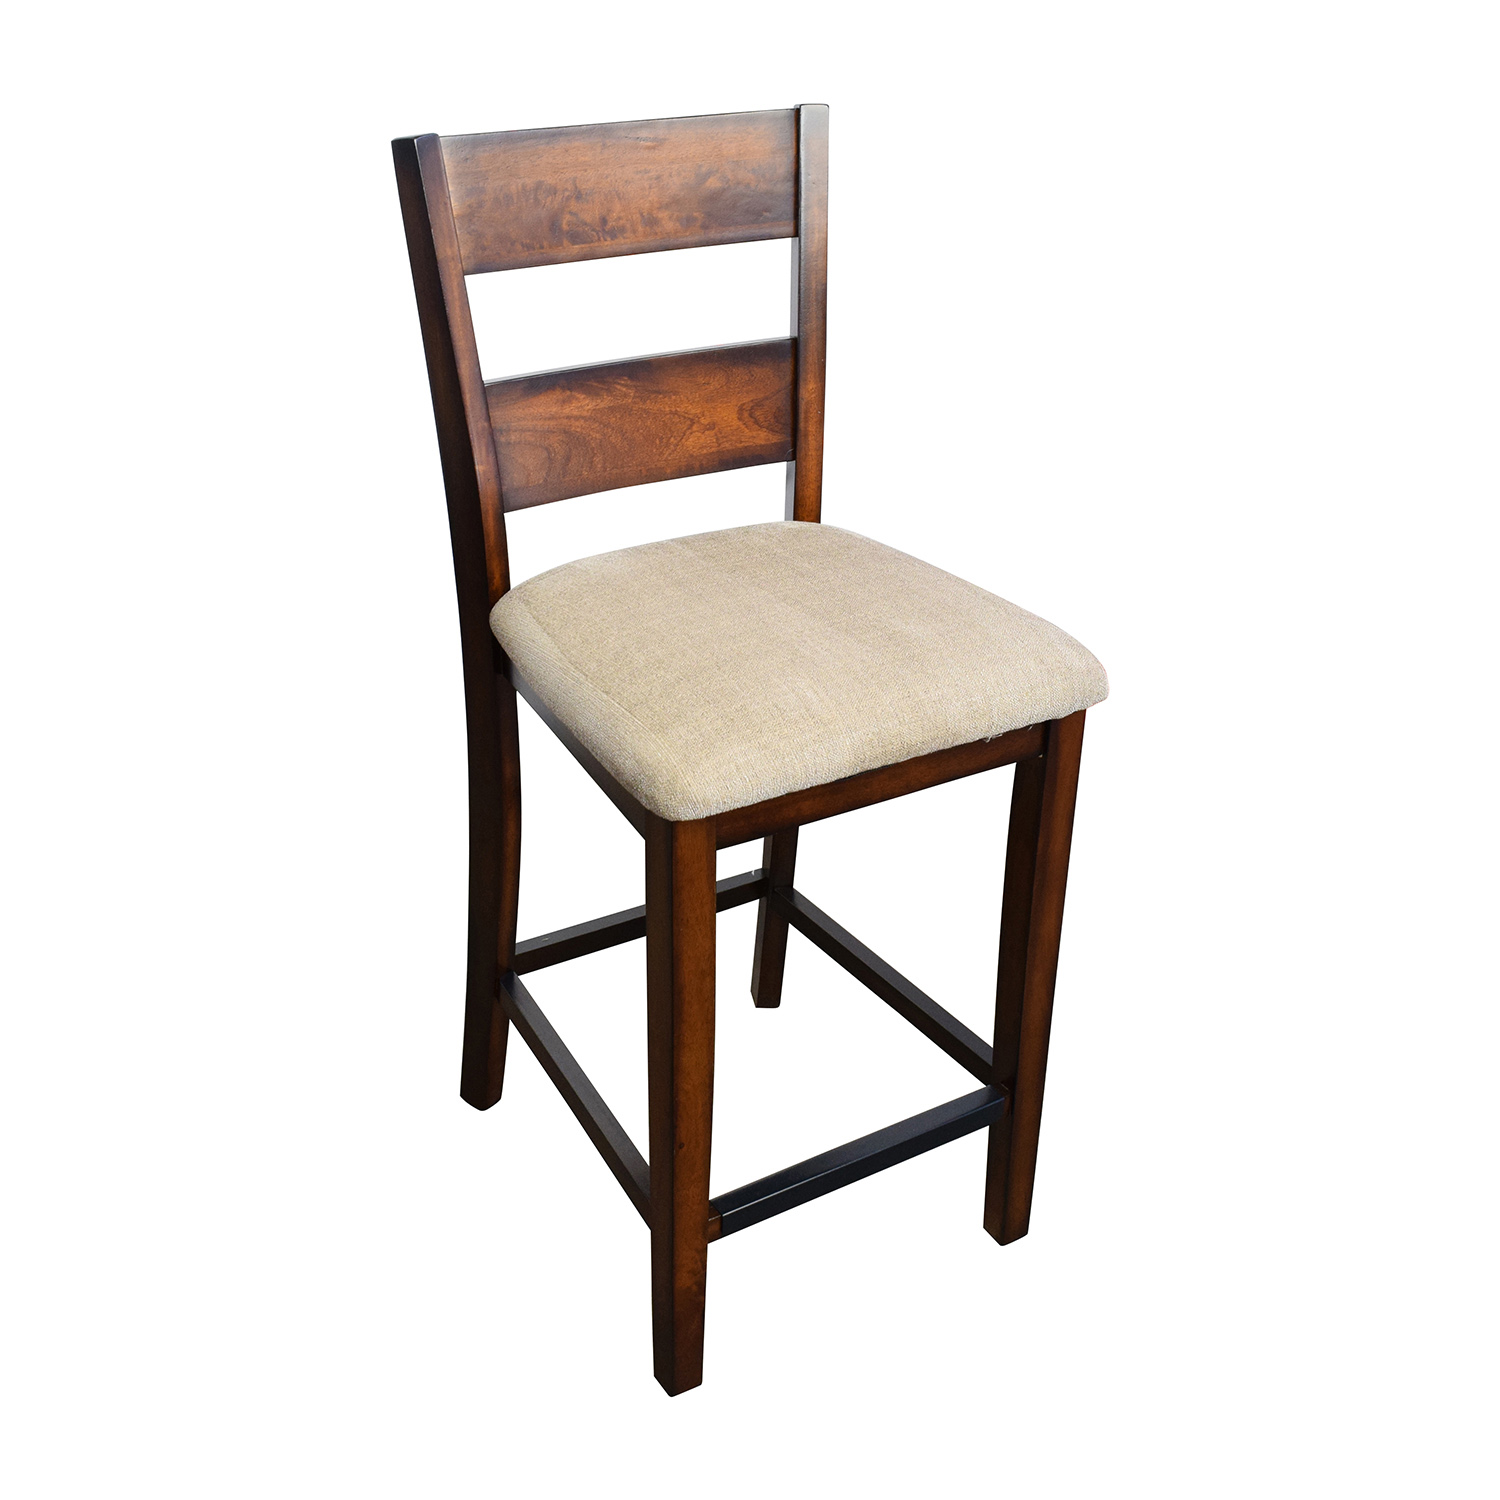 macys dining chairs herman miller eames 66 off macy 39s branton 5 pc counter height